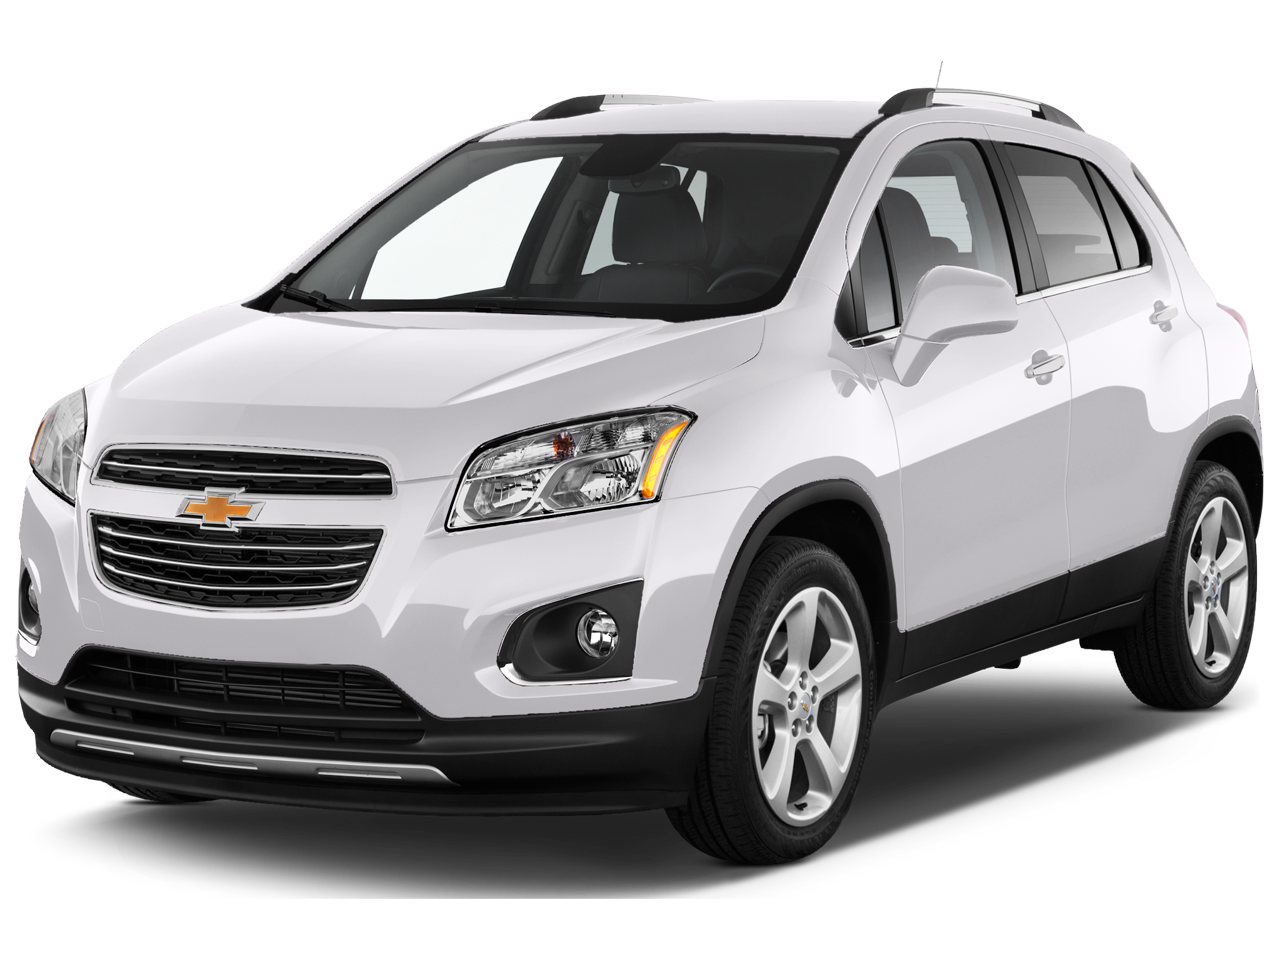 2016 Vehicles for Sale in Dexter, MI - LaFontaine Chevy